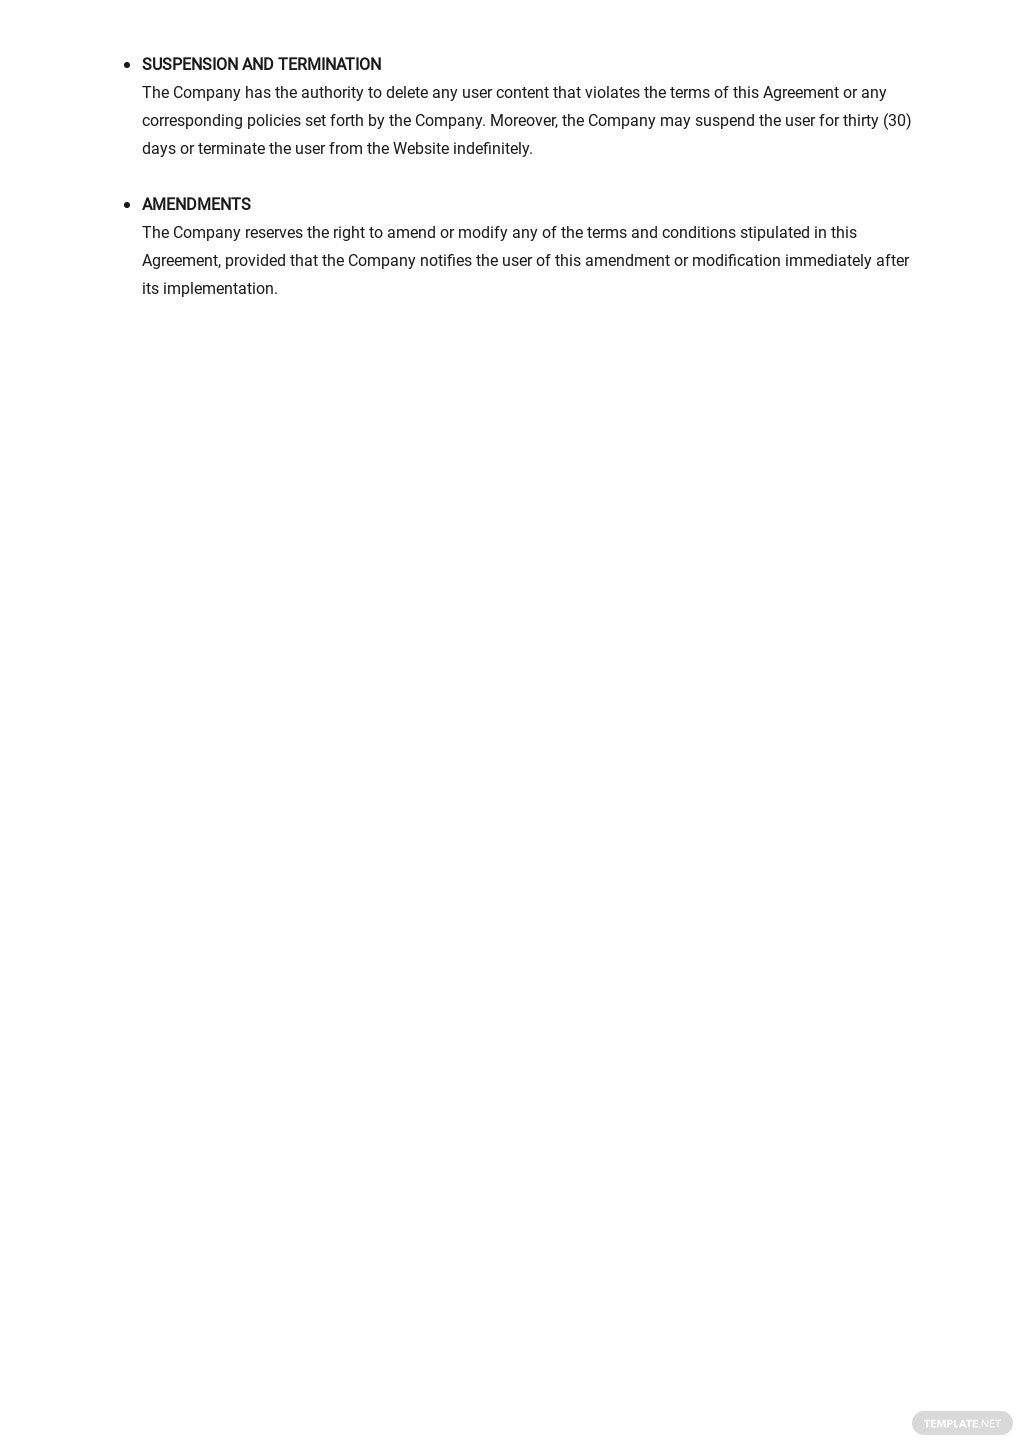 Website Service Agreement Terms of Use Template 2.jpe